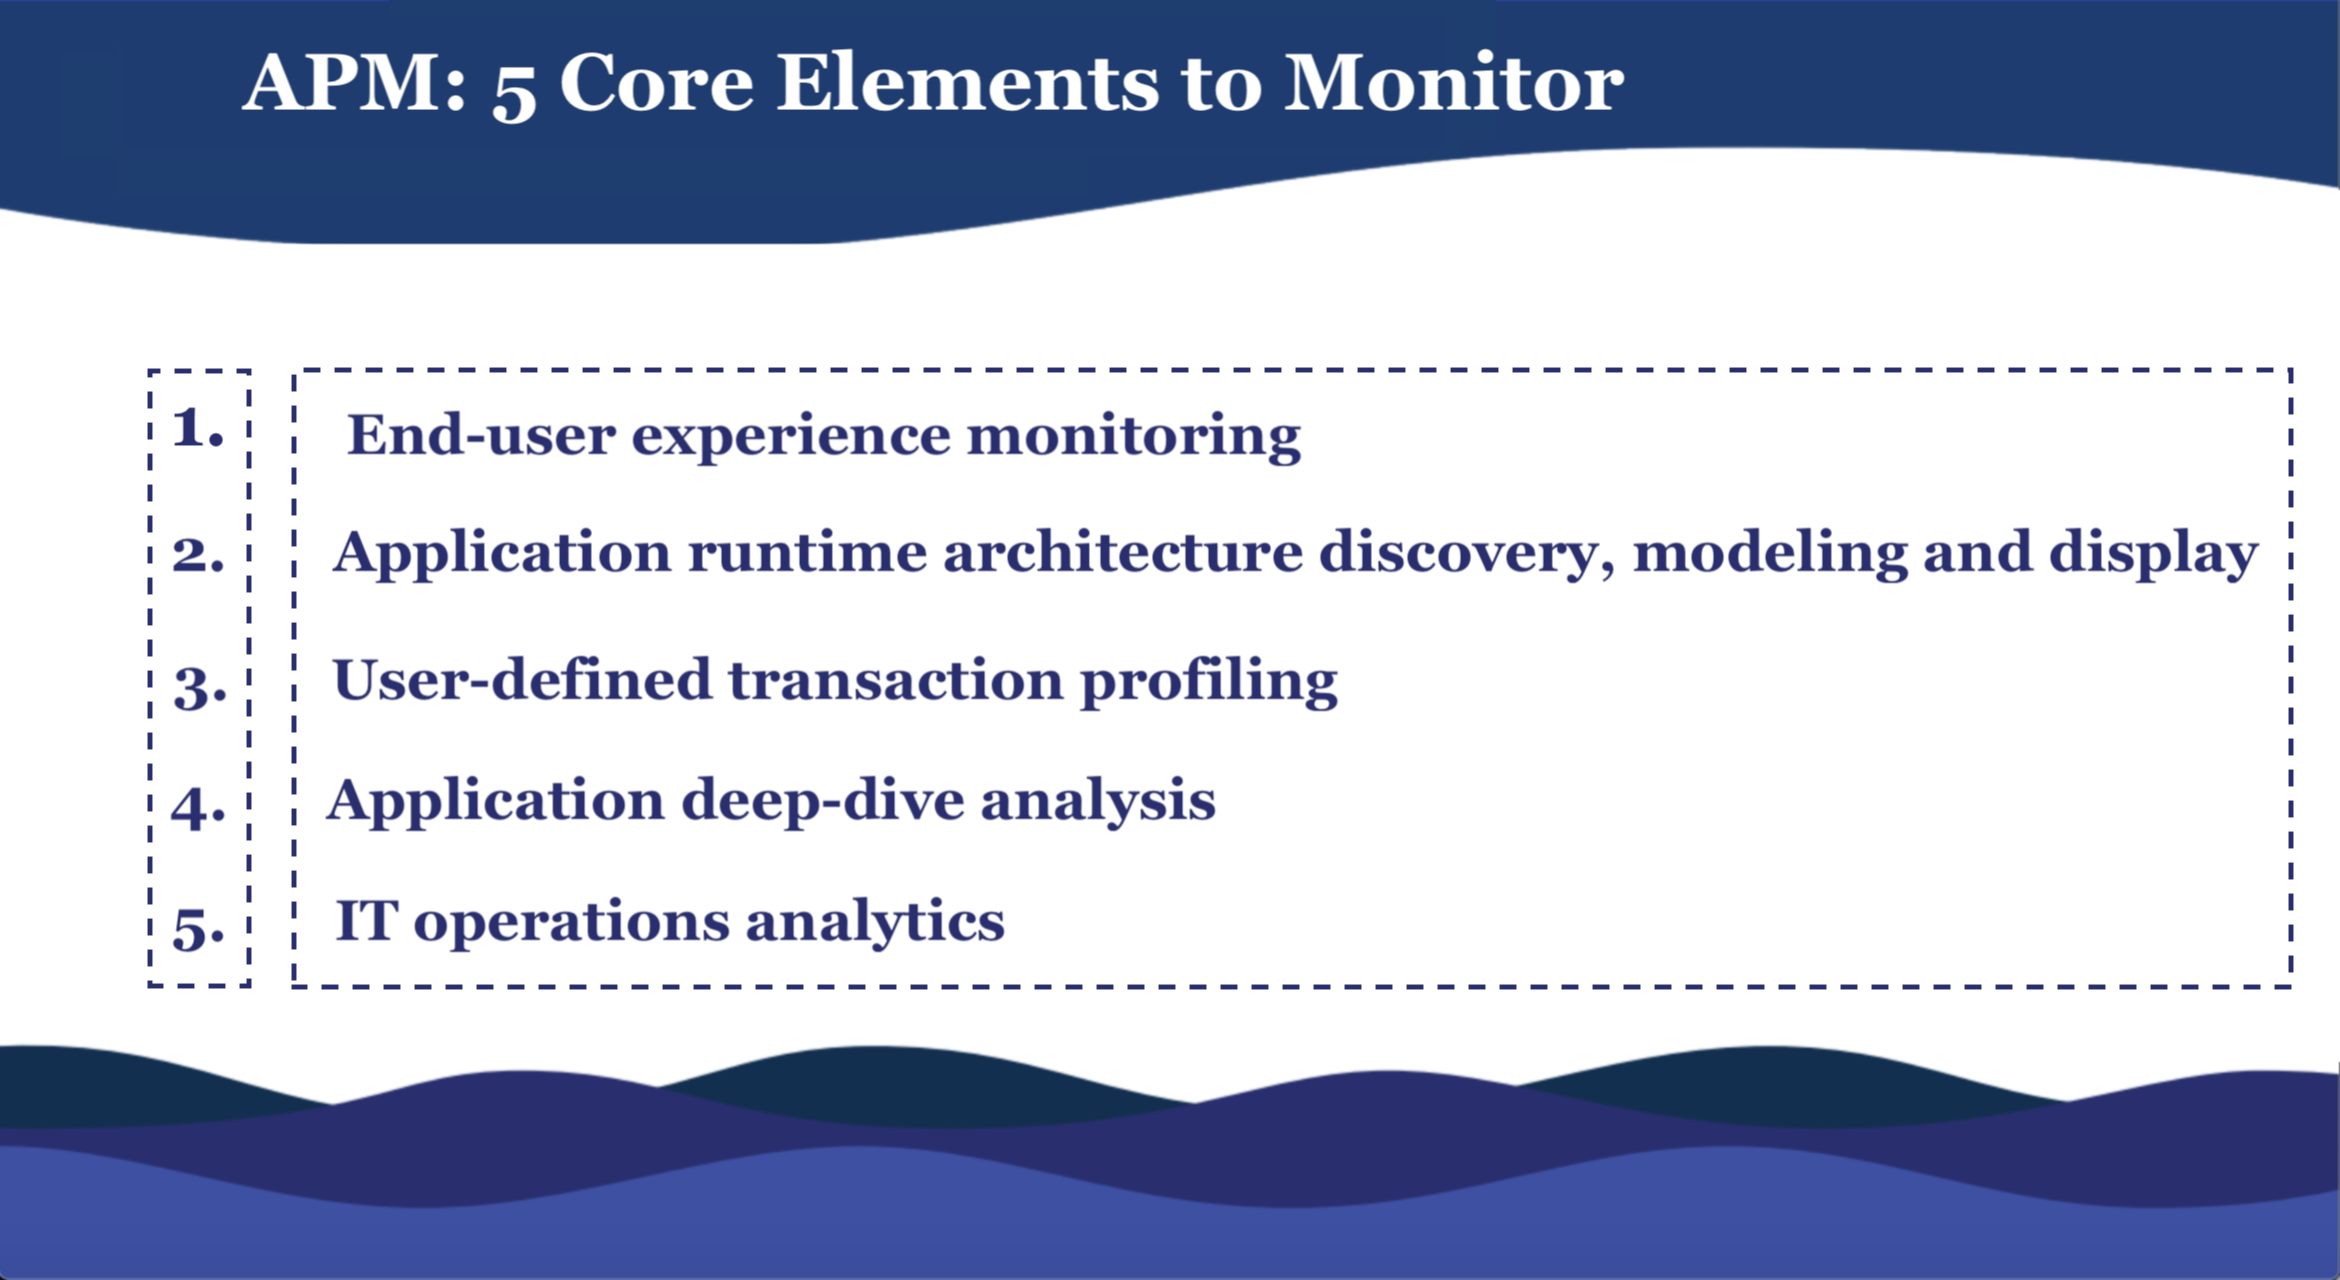 APM core elements to monitor